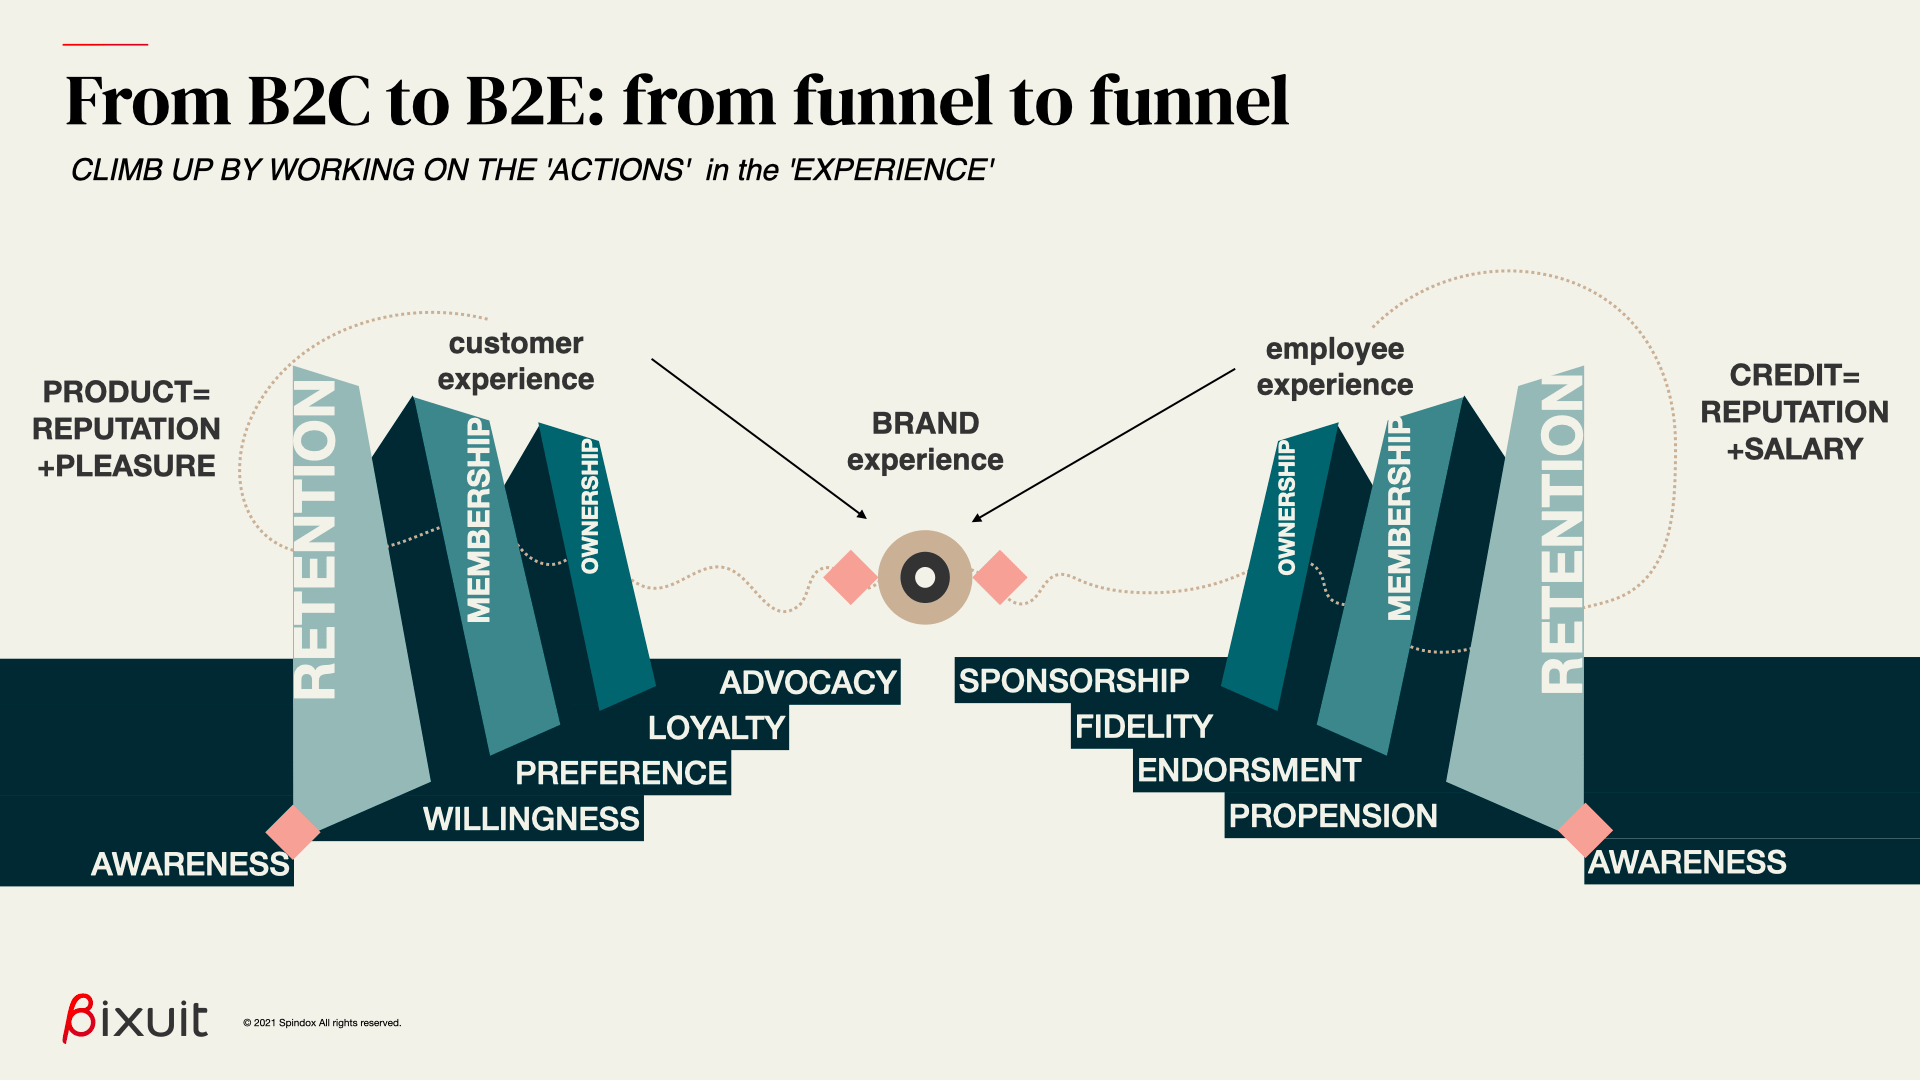 Climb up from b2c funnel to b2e funnel by working on the actions in the brand experience